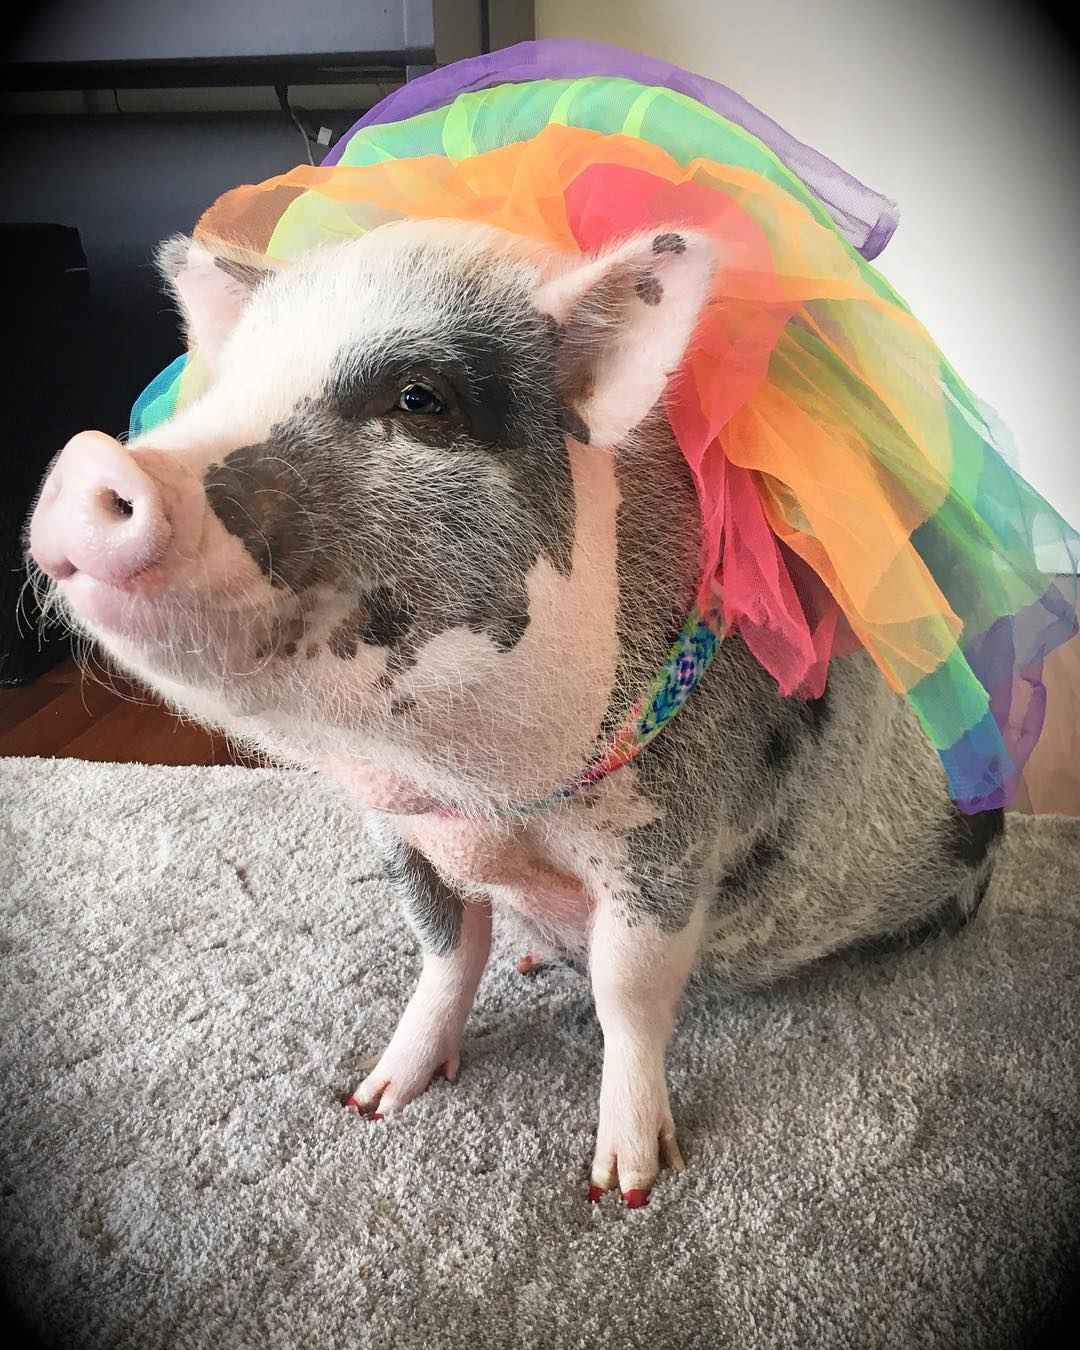 <div class='meta'><div class='origin-logo' data-origin='none'></div><span class='caption-text' data-credit=''>Lilou the pig is dressed up in rainbow colors to celebrate Pride. Photo submitted to KGO-TV by @lilous_sfpig/Instagram</span></div>